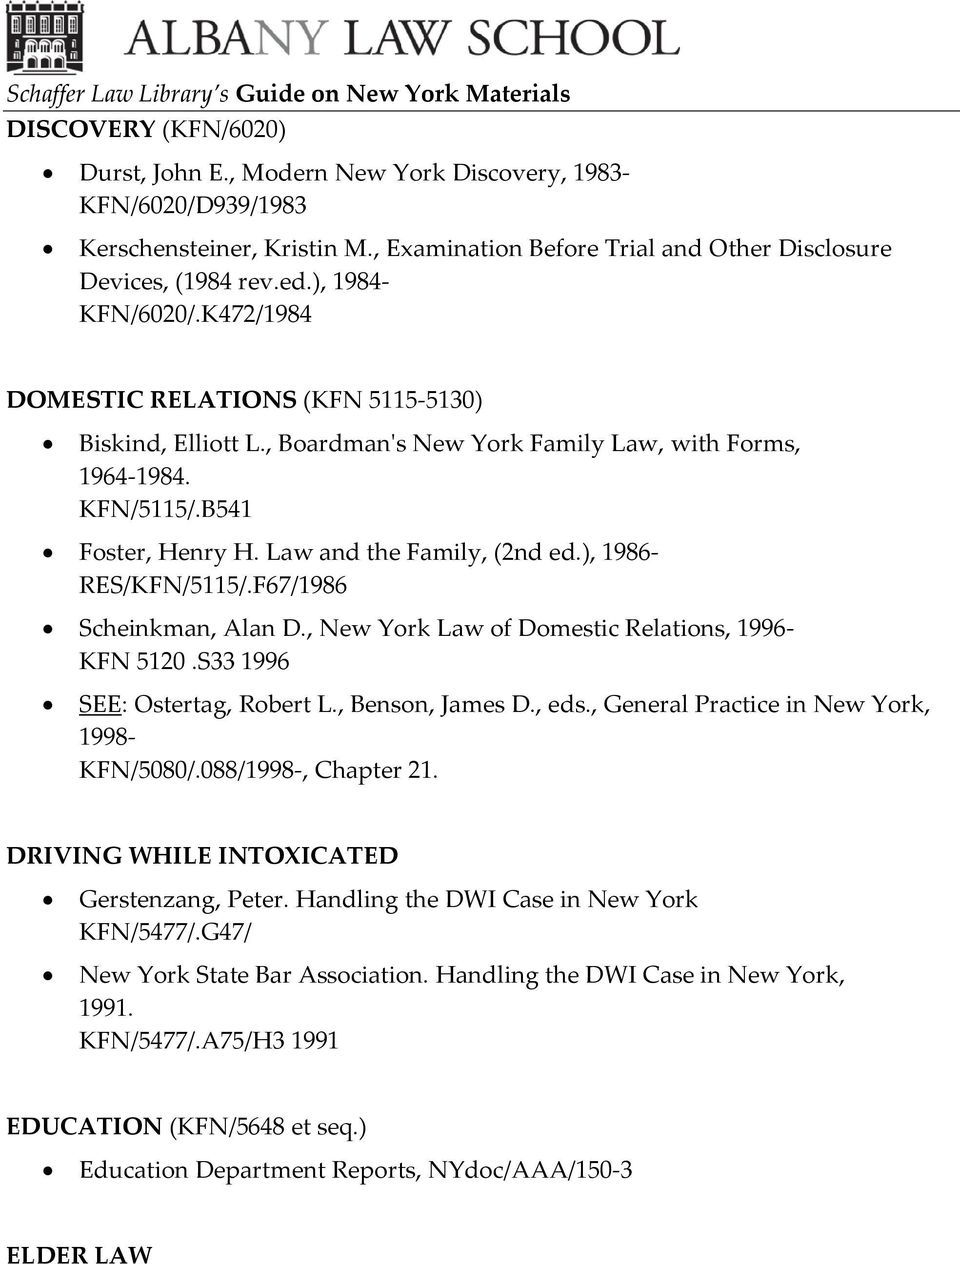 ), 1986- RES/KFN/5115/.F67/1986 Scheinkman, Alan D., New York Law of Domestic Relations, 1996- KFN 5120.S33 1996 KFN/5080/.088/, Chapter 21. DRIVING WHILE INTOXICATED Gerstenzang, Peter.